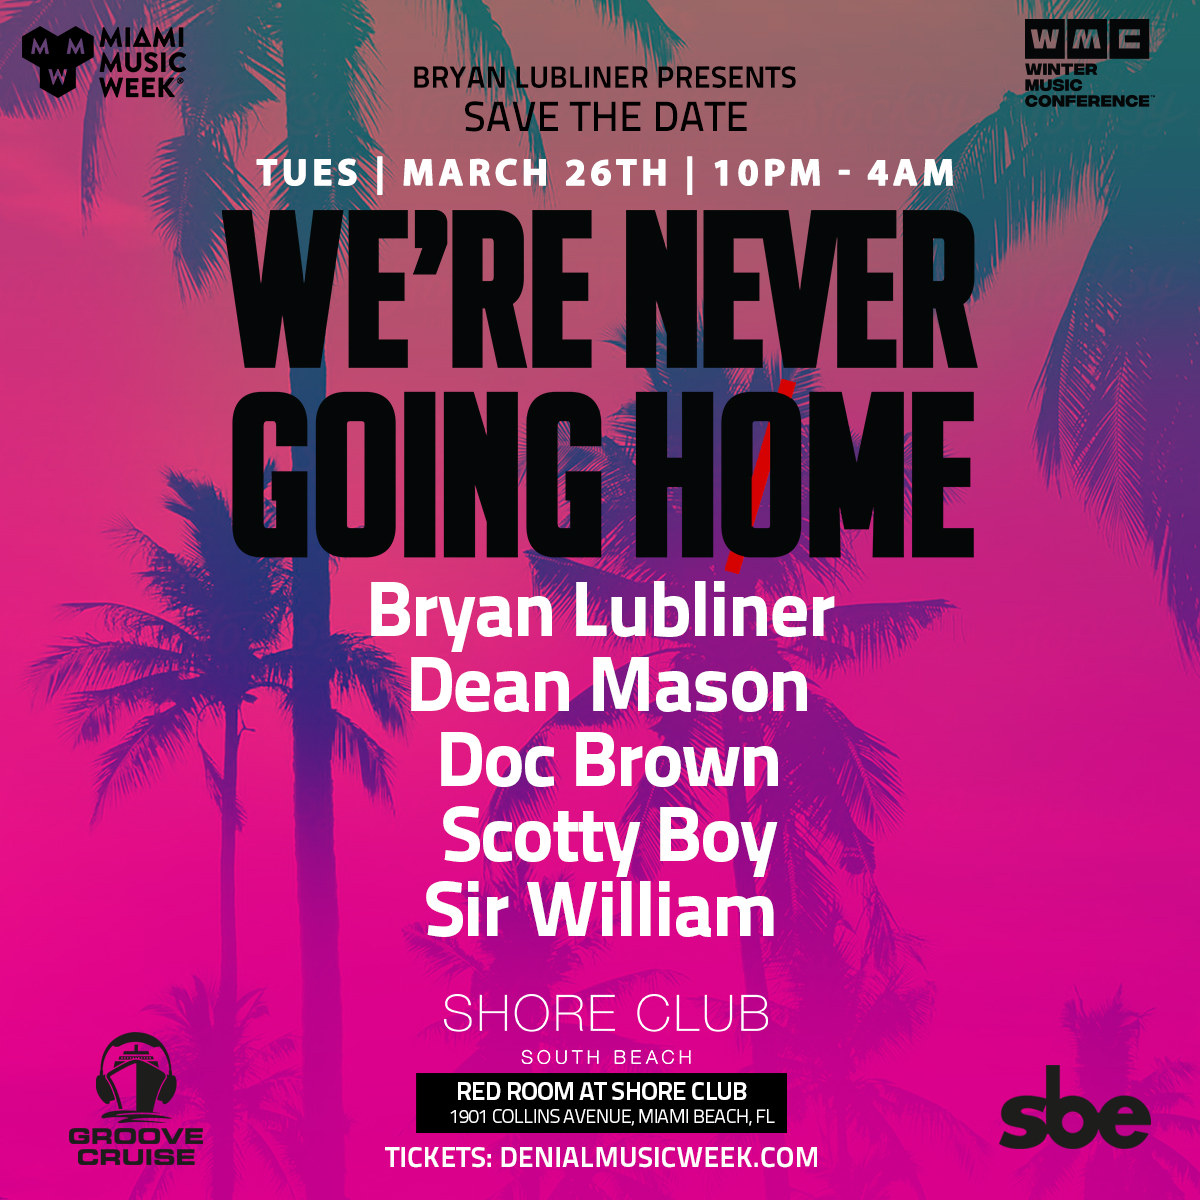 We're Never Going Home Image